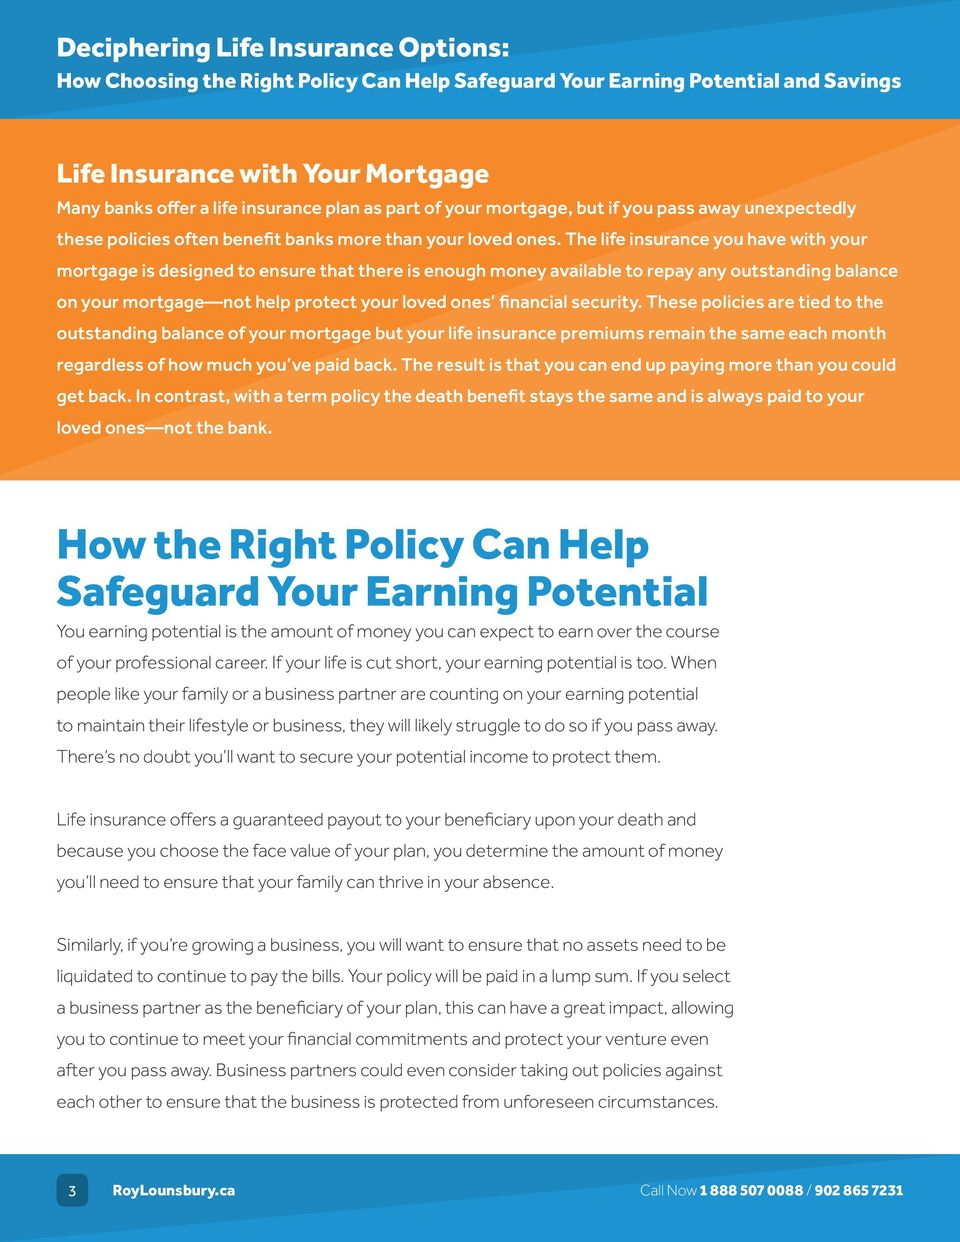 security. These policies are tied to the outstanding balance of your mortgage but your life insurance premiums remain the same each month regardless of how much you ve paid back.